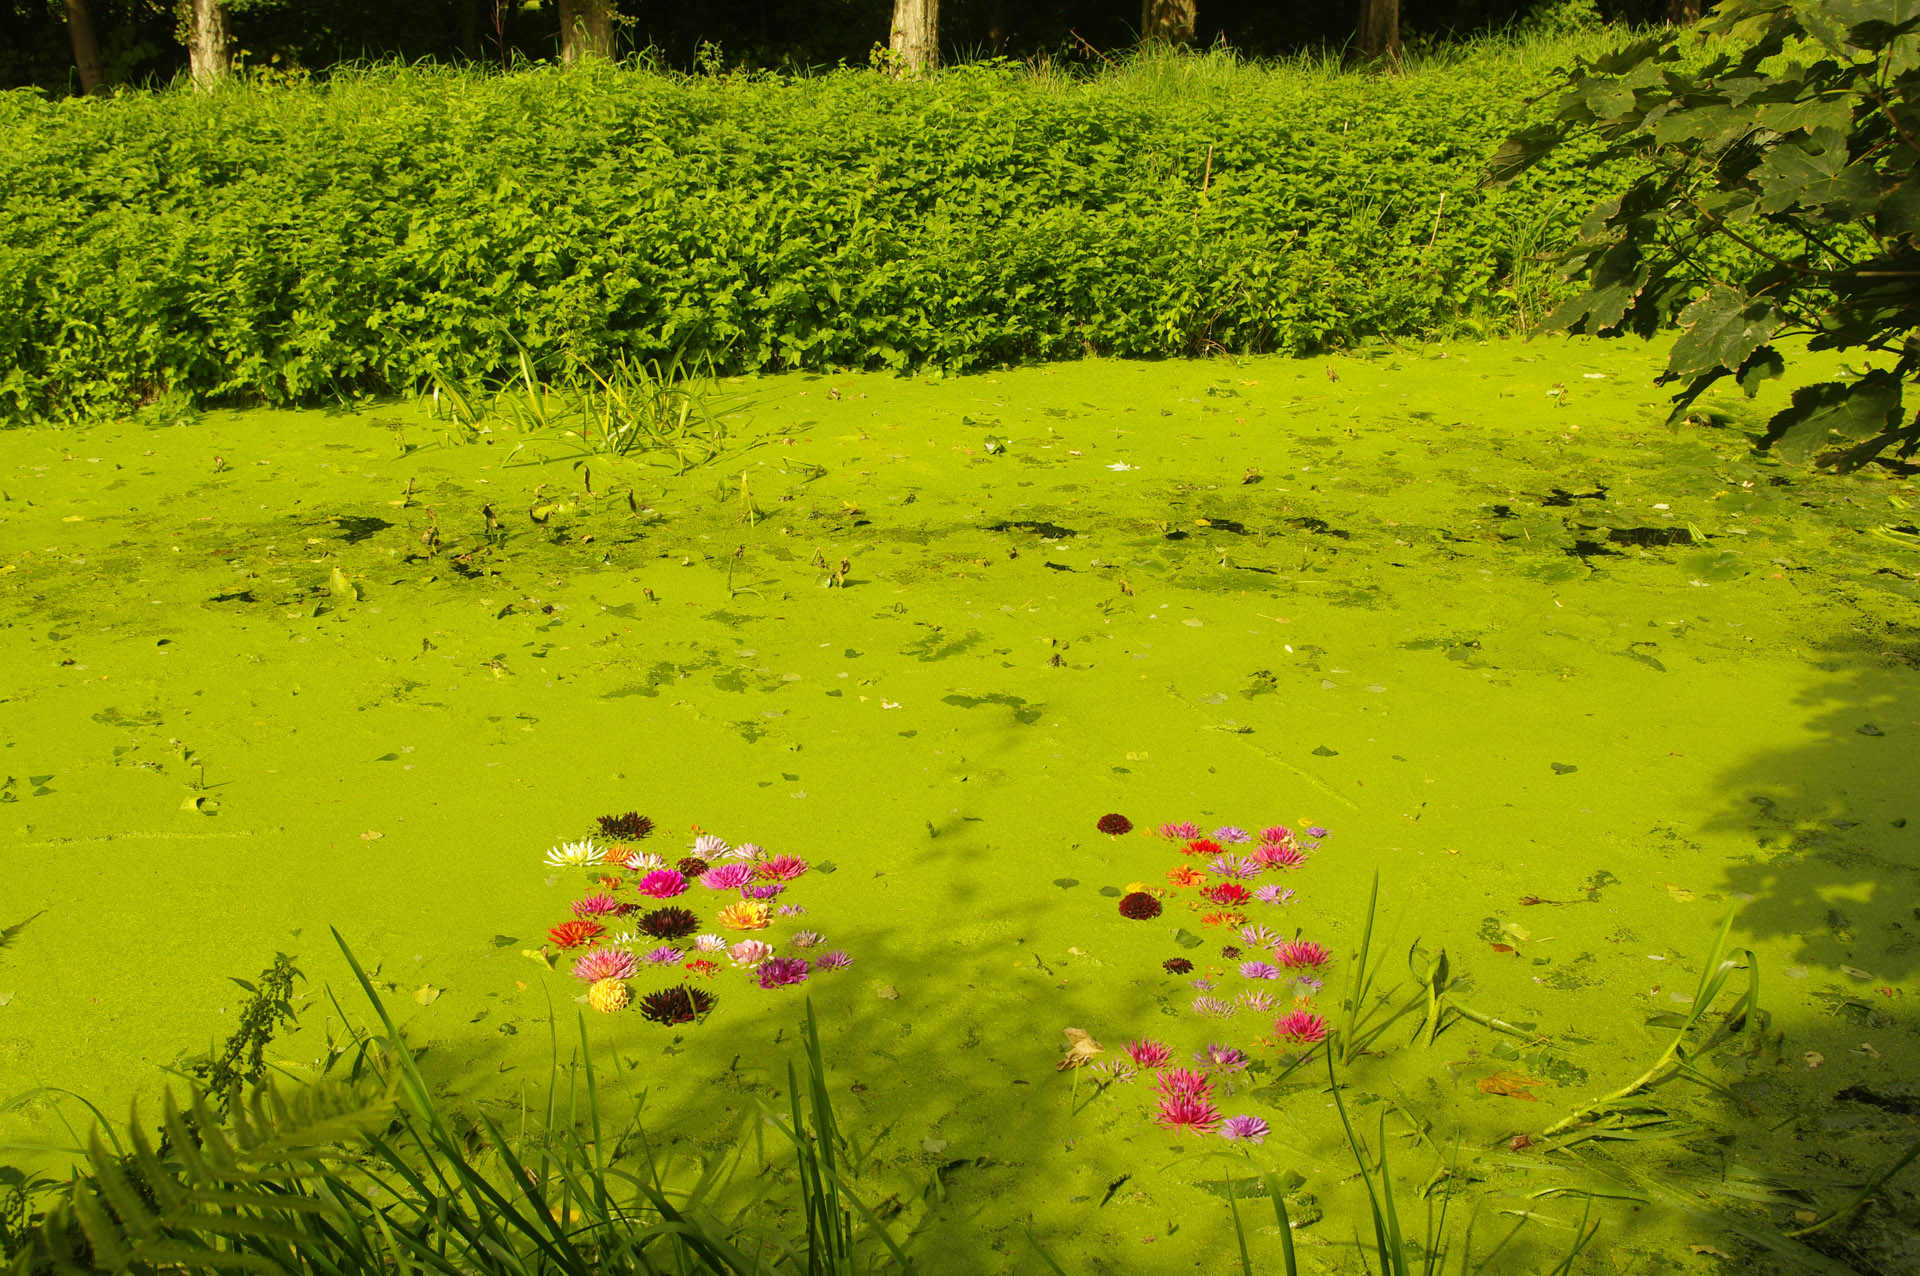 anglesey abbey Dahlia festival flowers floating duckweed covered lode